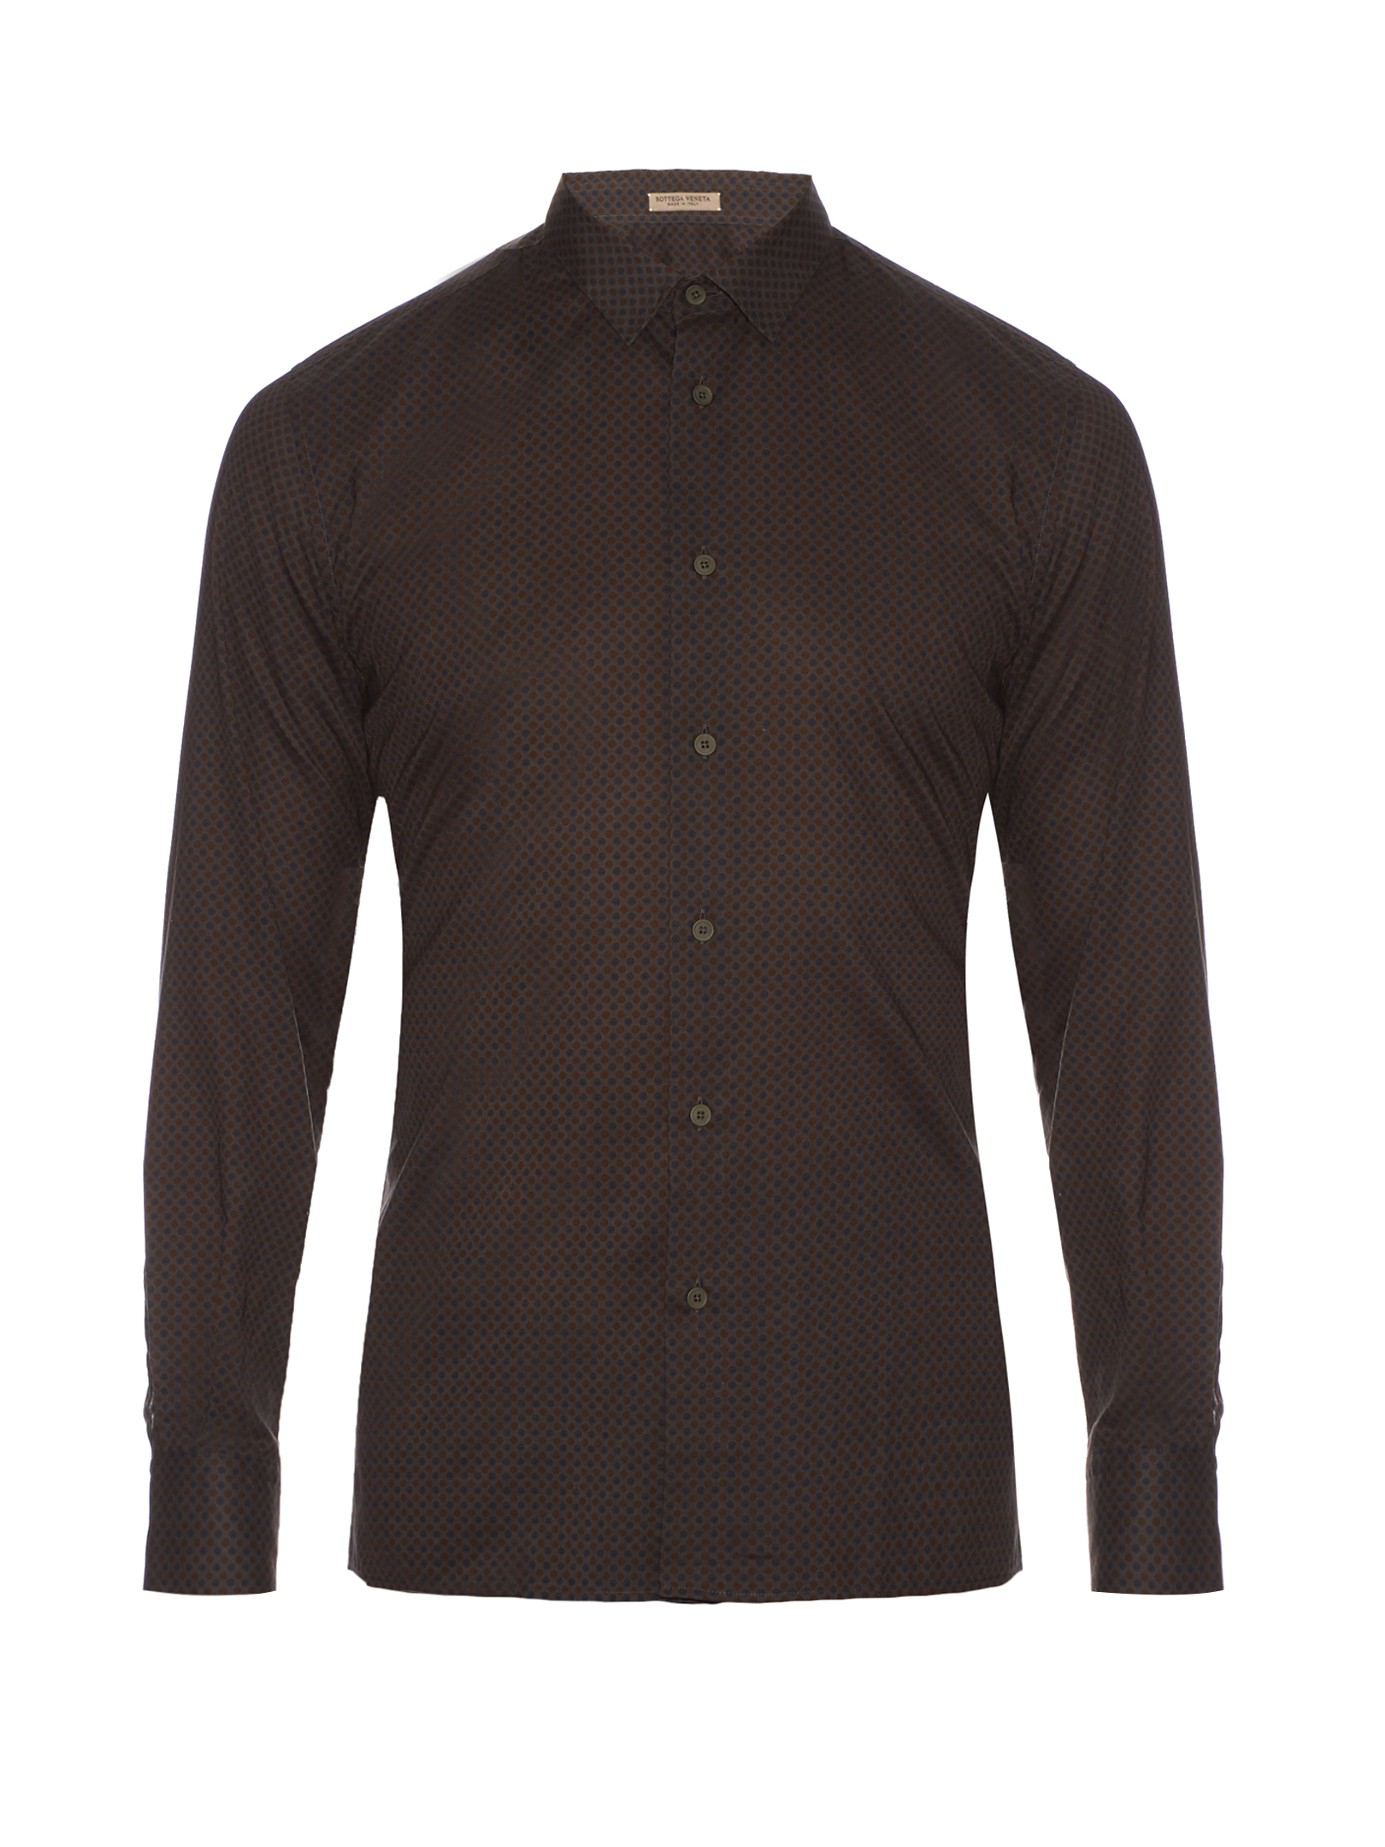 Bottega veneta vintage print cotton shirt in brown for men for Bottega veneta t shirt